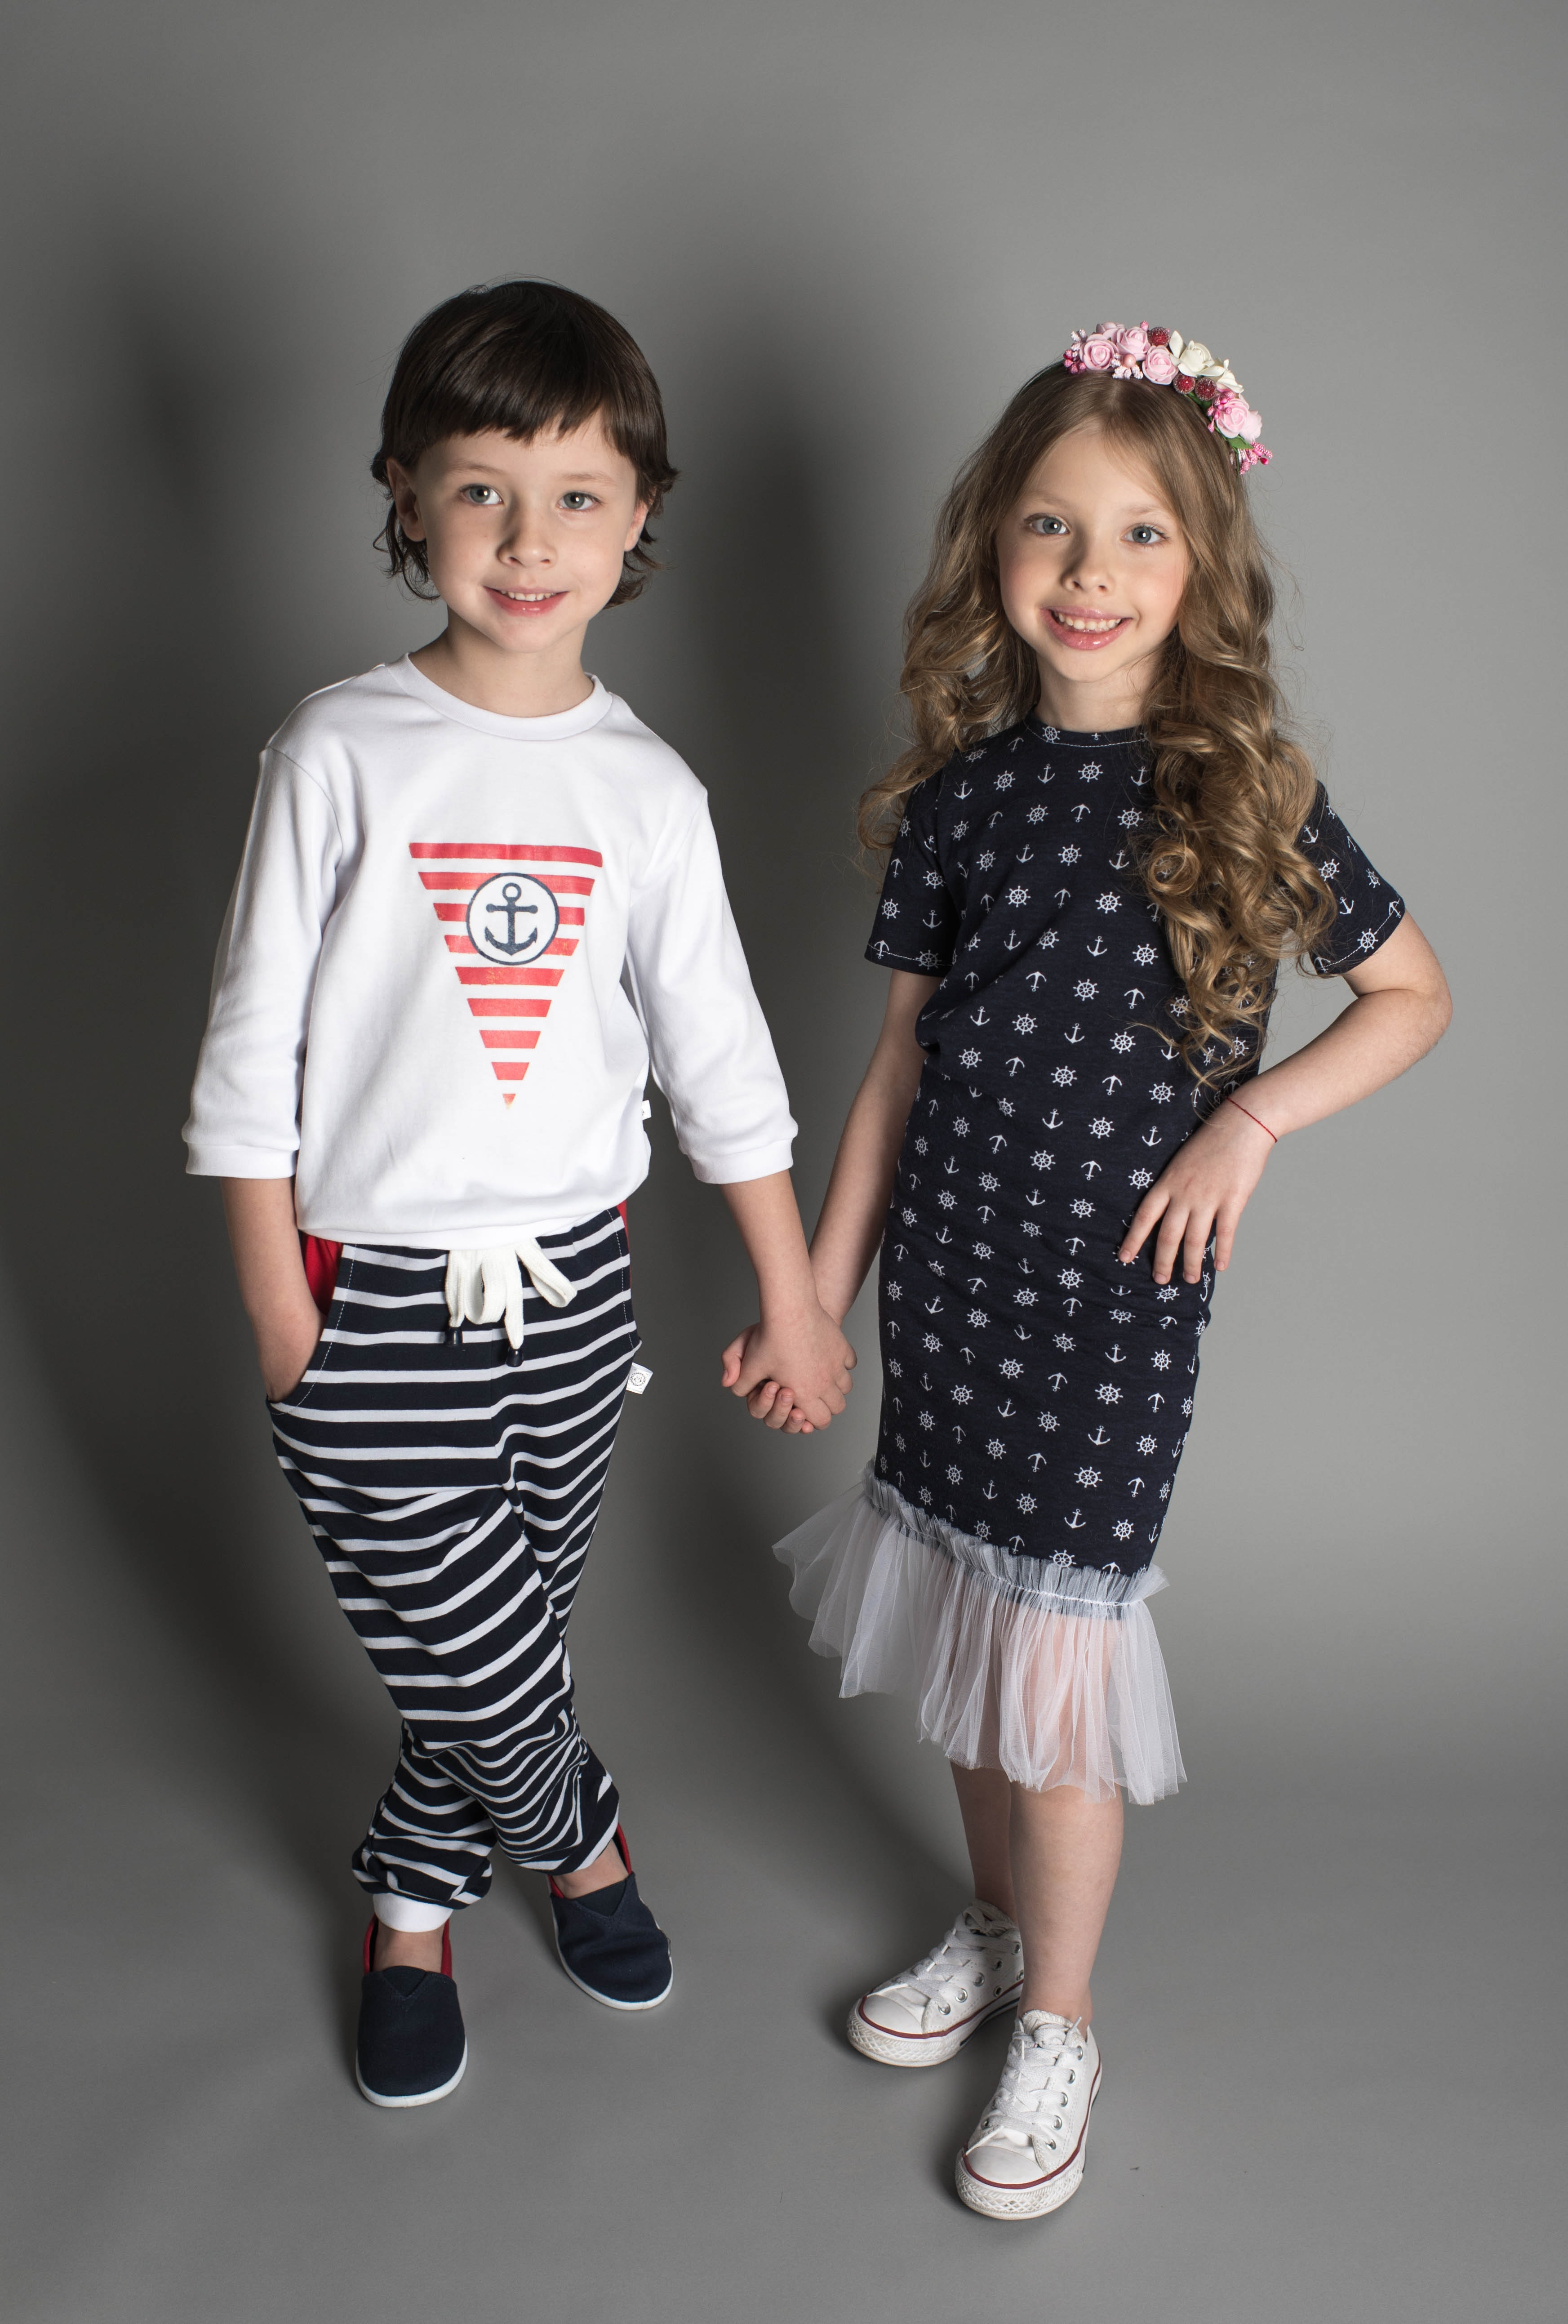 9018c4935e8b Boy and Girl Taking Photo While Holding Hands · Free Stock Photo